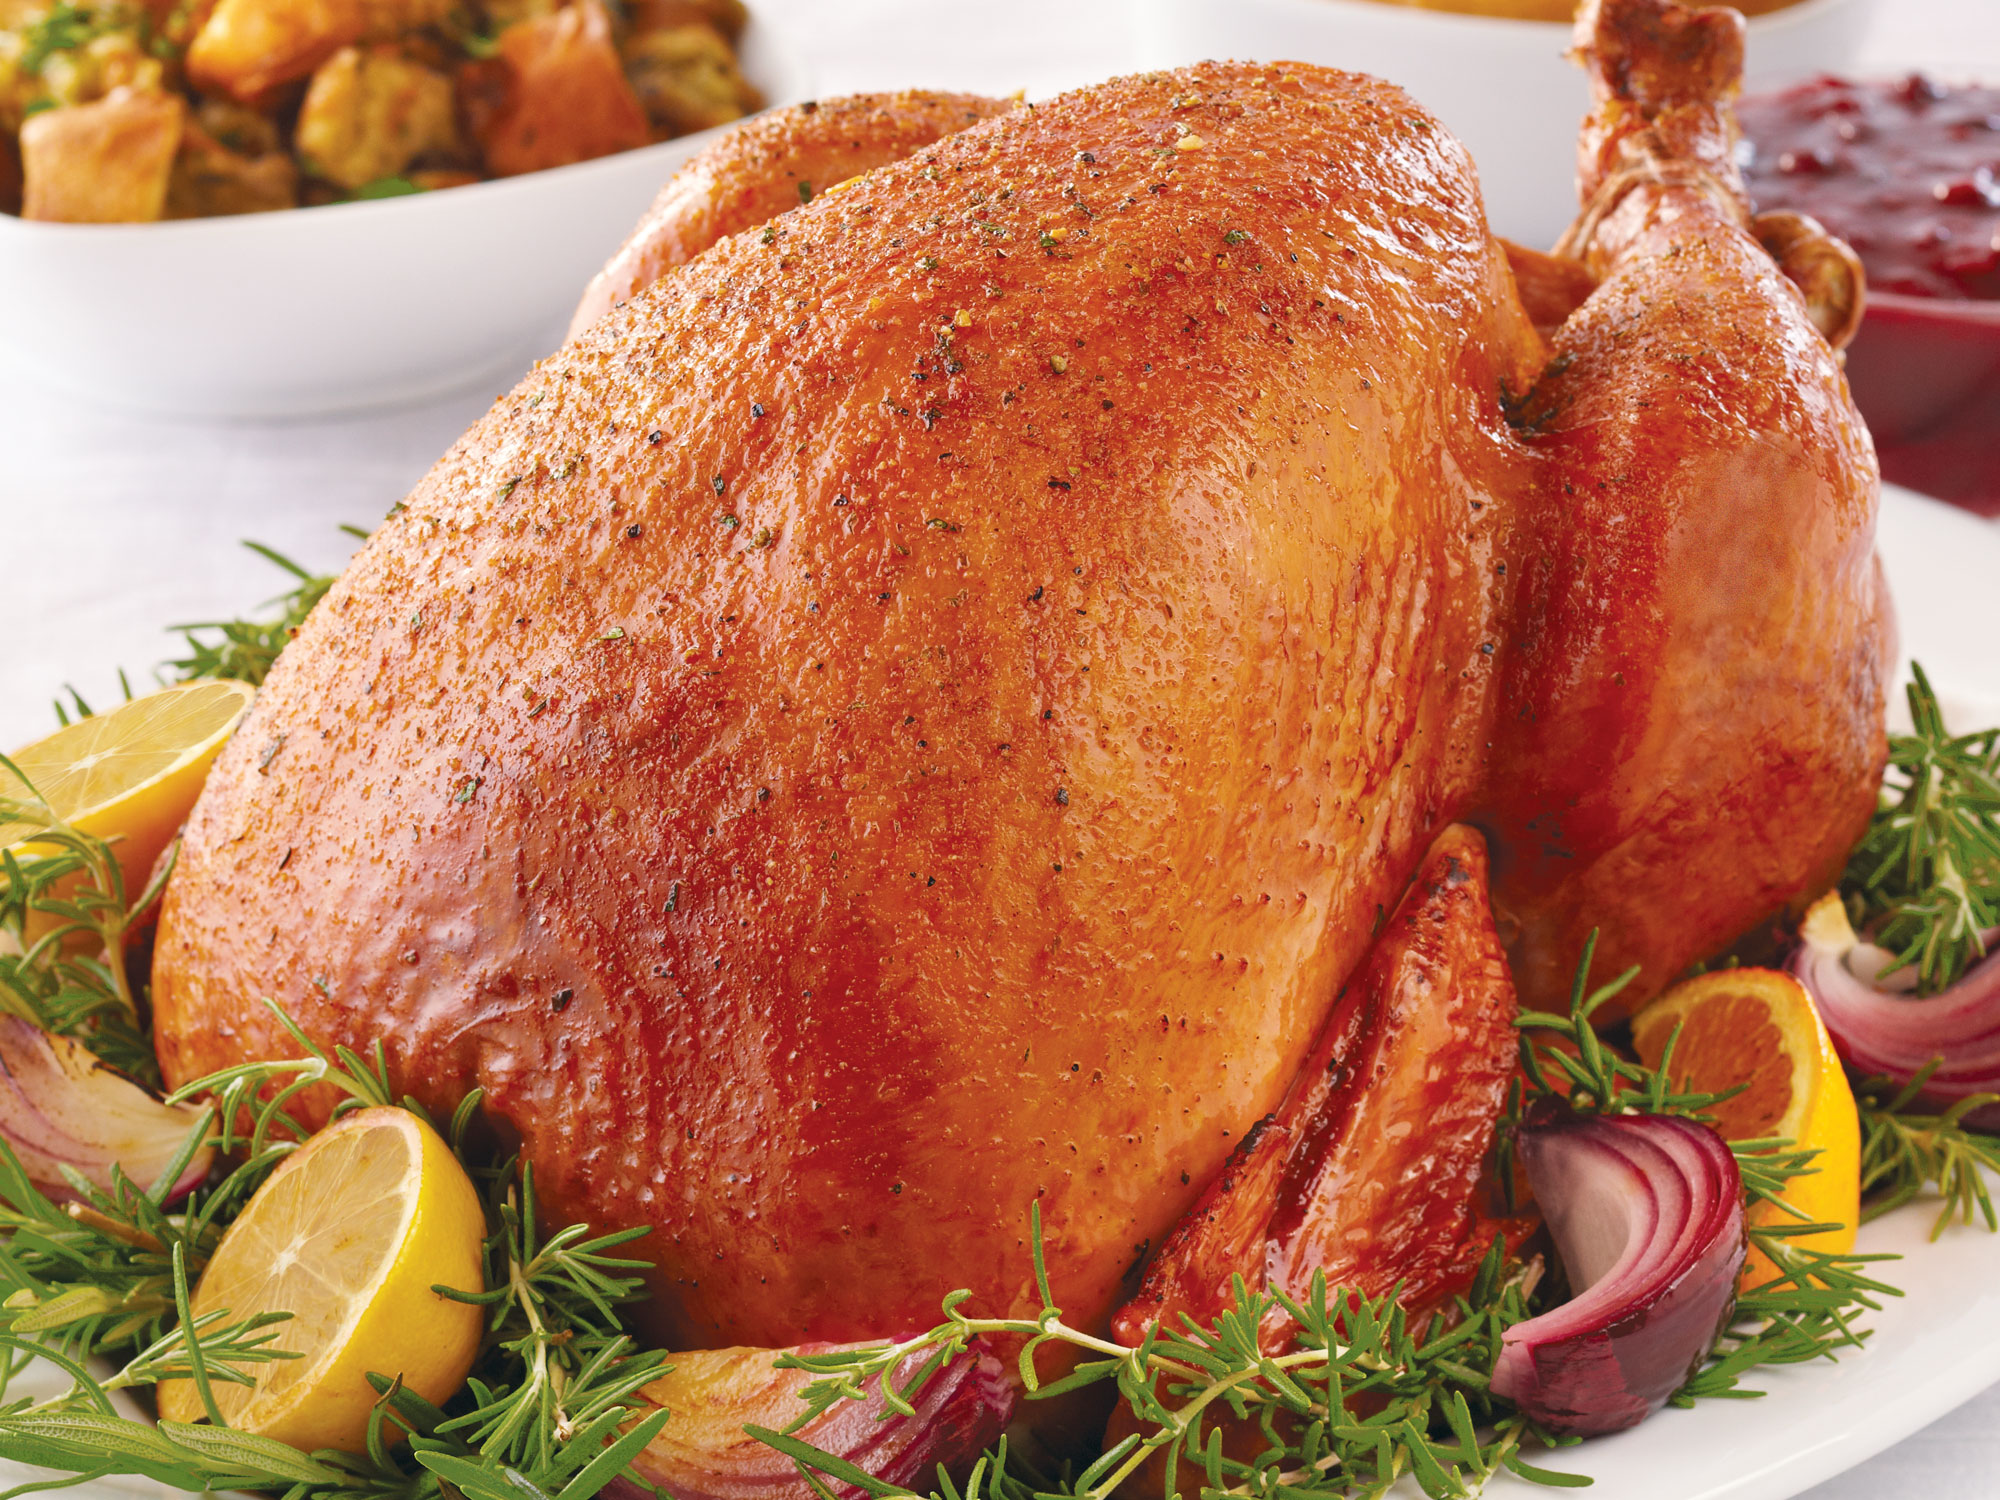 How to cook your Christmas turkey - The Medicine Garden